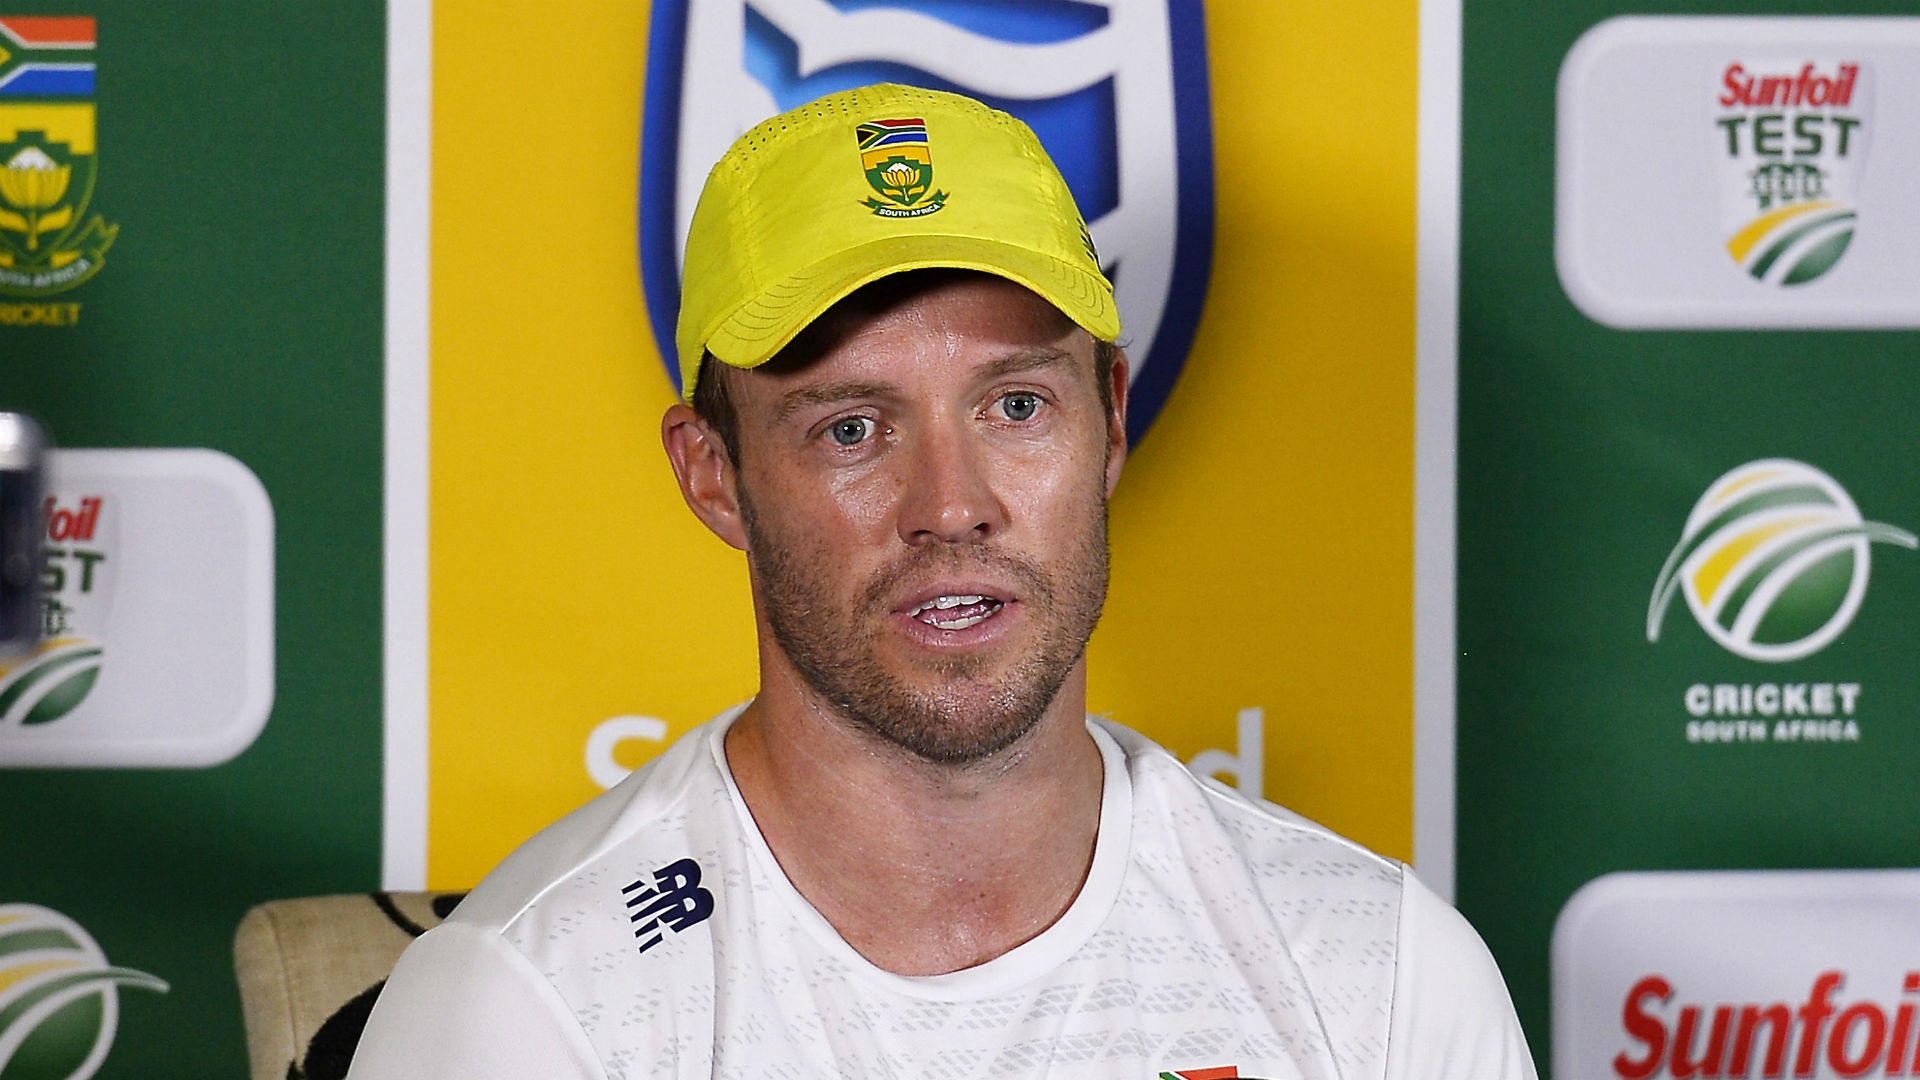 Du Plessis wanted De Villiers return on eve of CWC